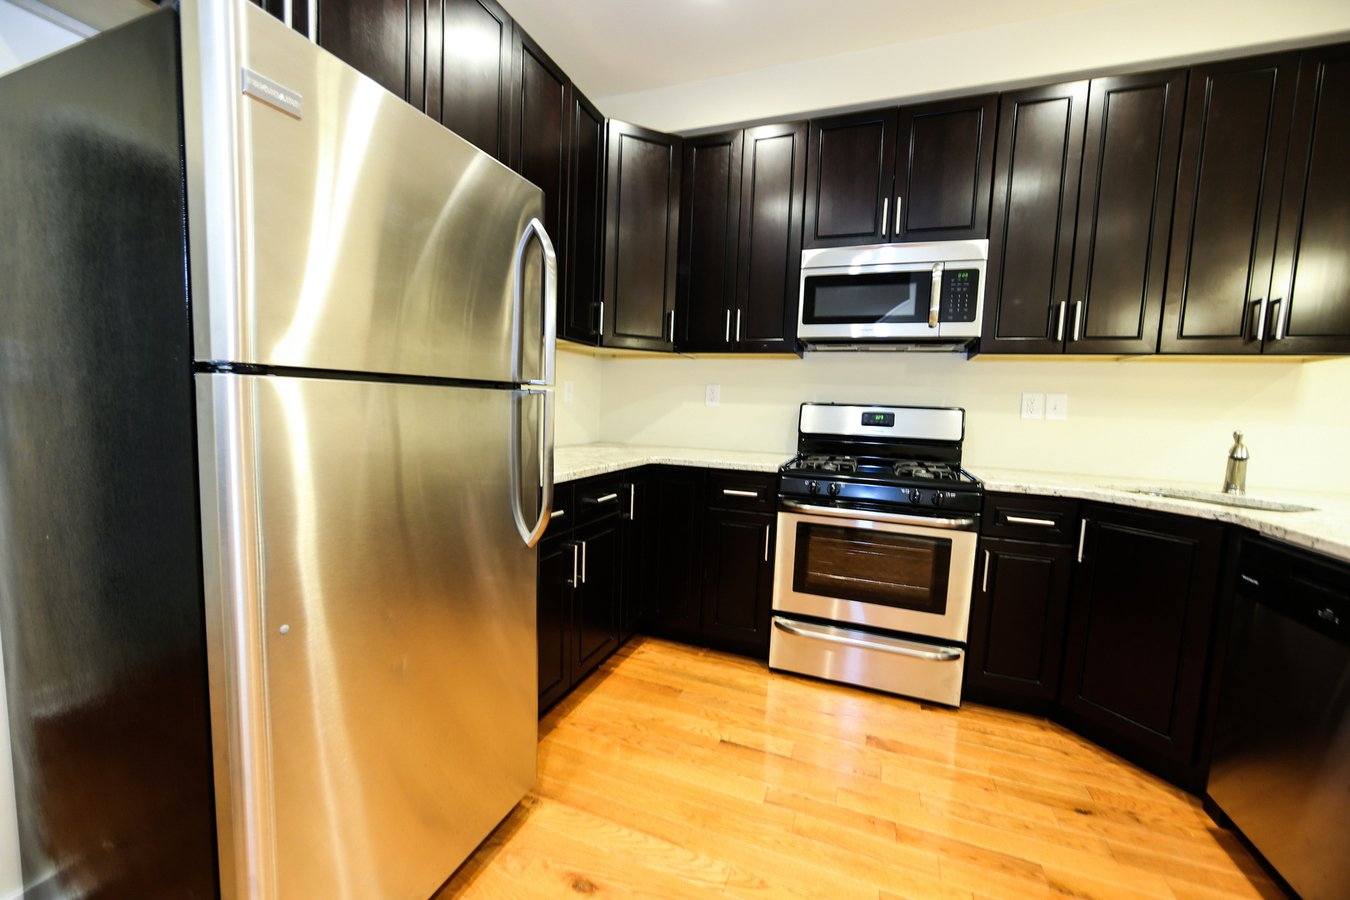 5 Bedrooms 3 Bathrooms House for rent at 1406 Willington St. in Philadelphia, PA